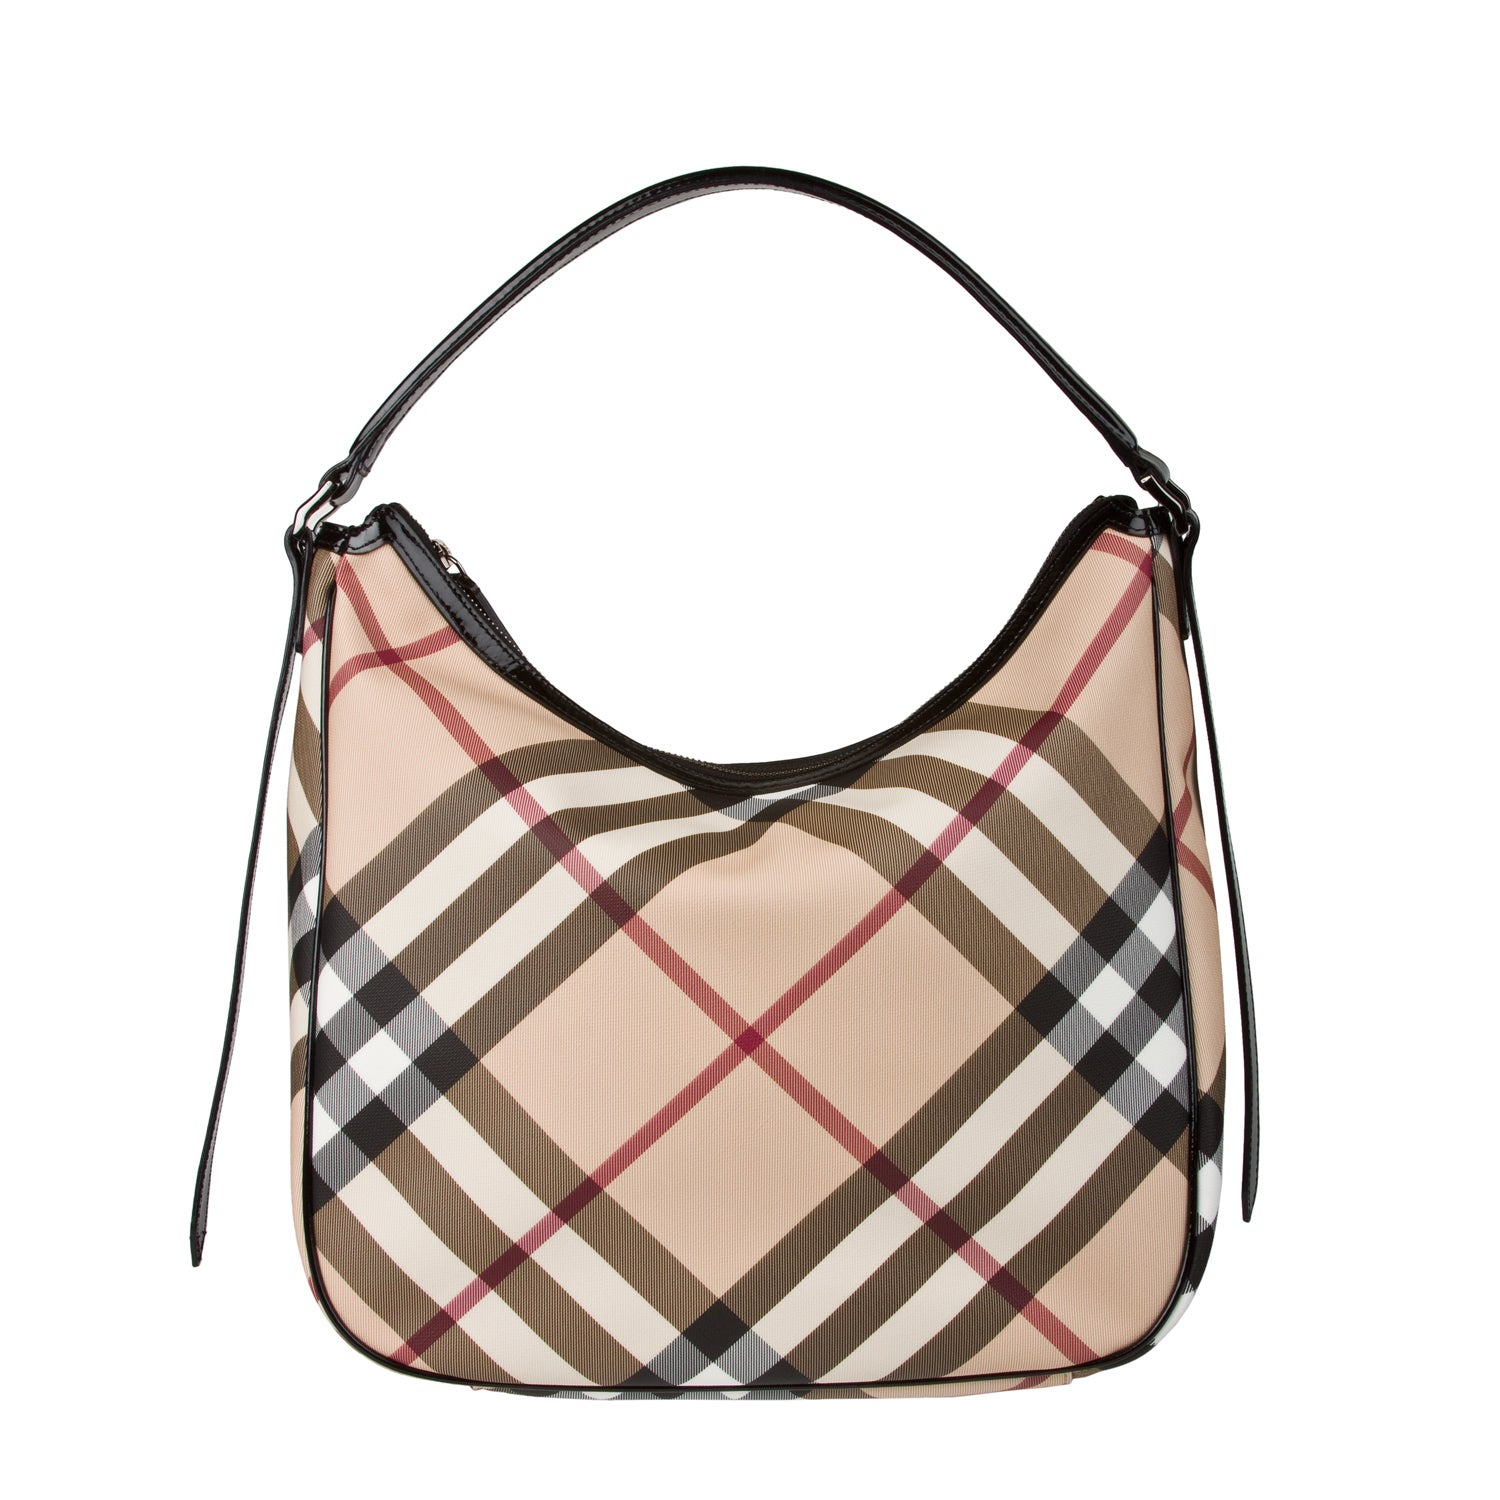 Burberry Medium Nova Check Hobo Bag Free Shipping Today